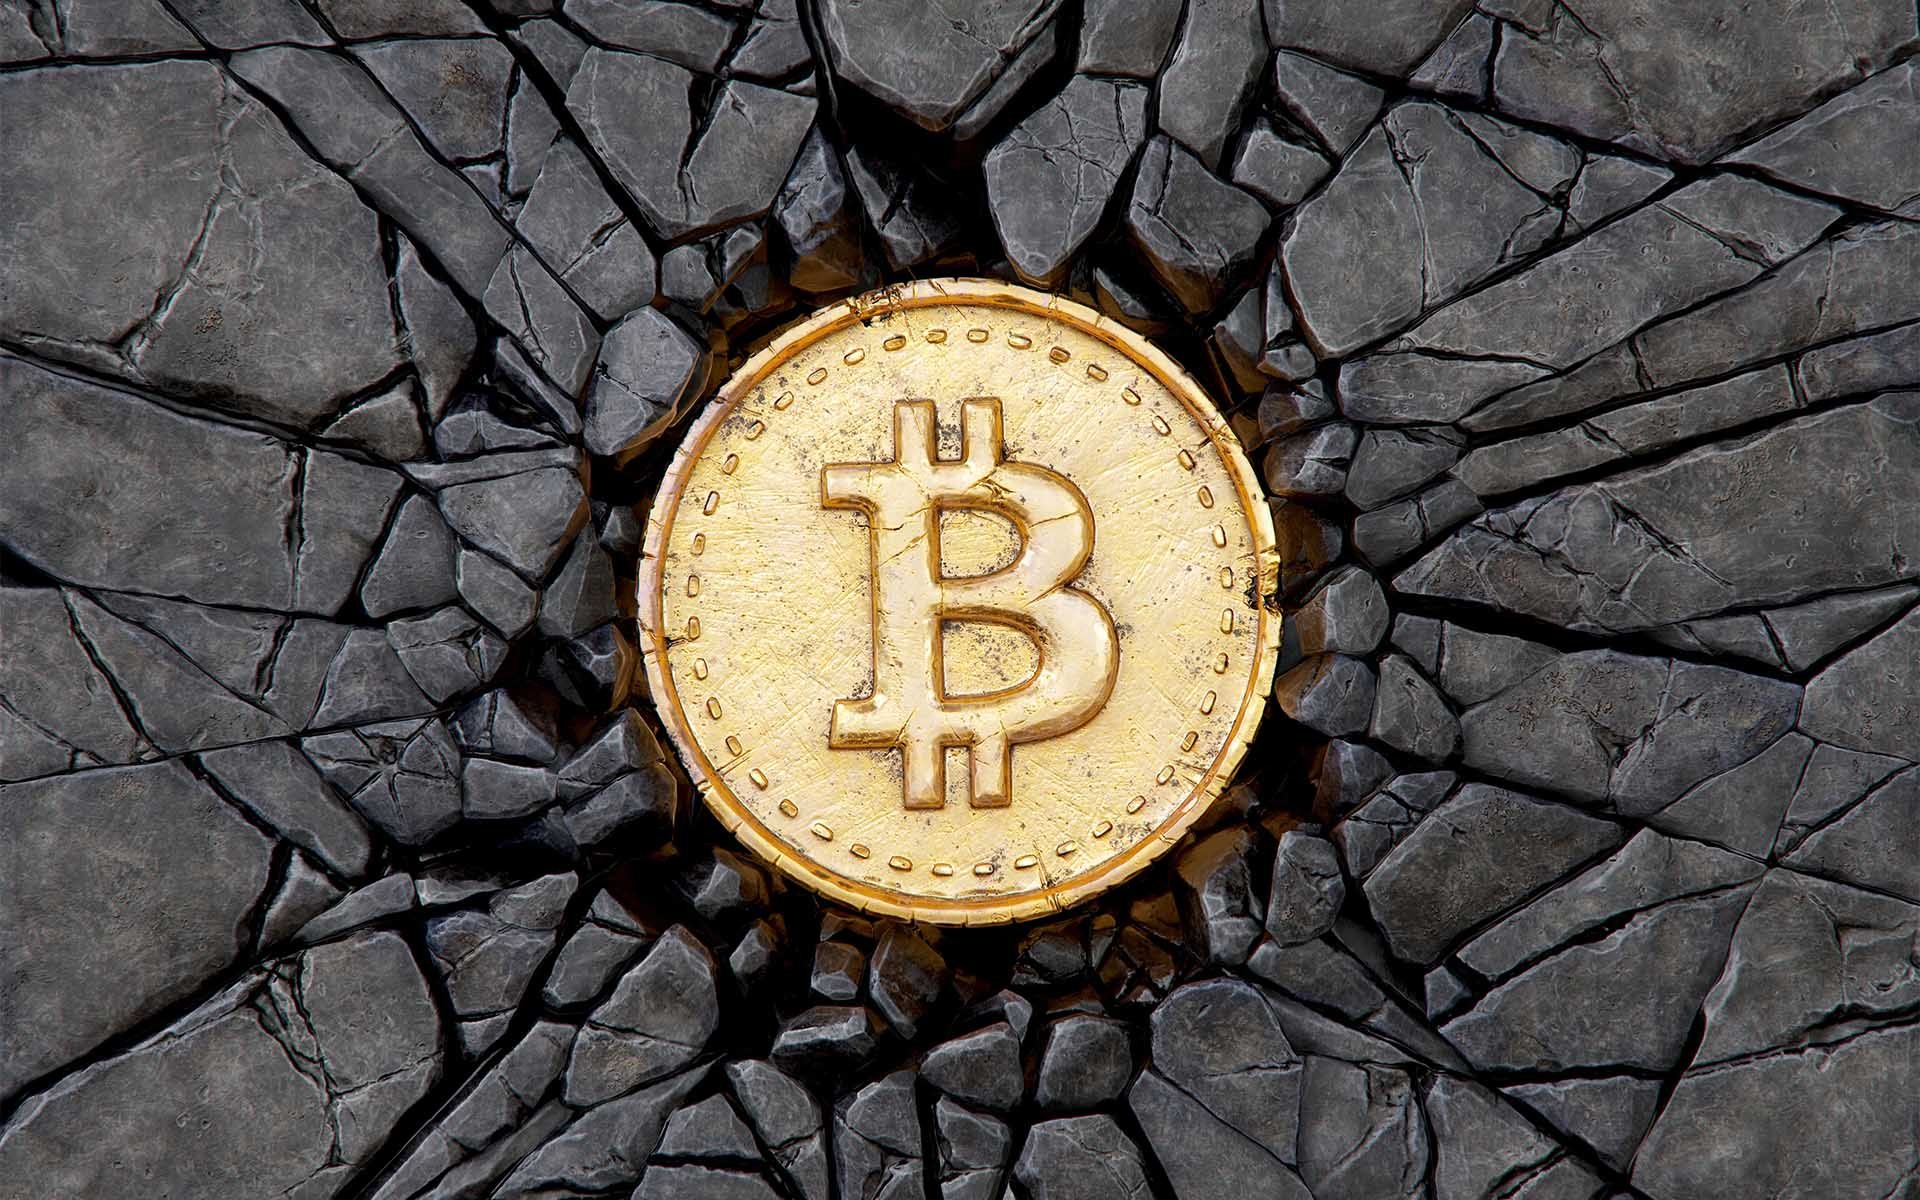 FxPro: Bitcoin loses protective asset status